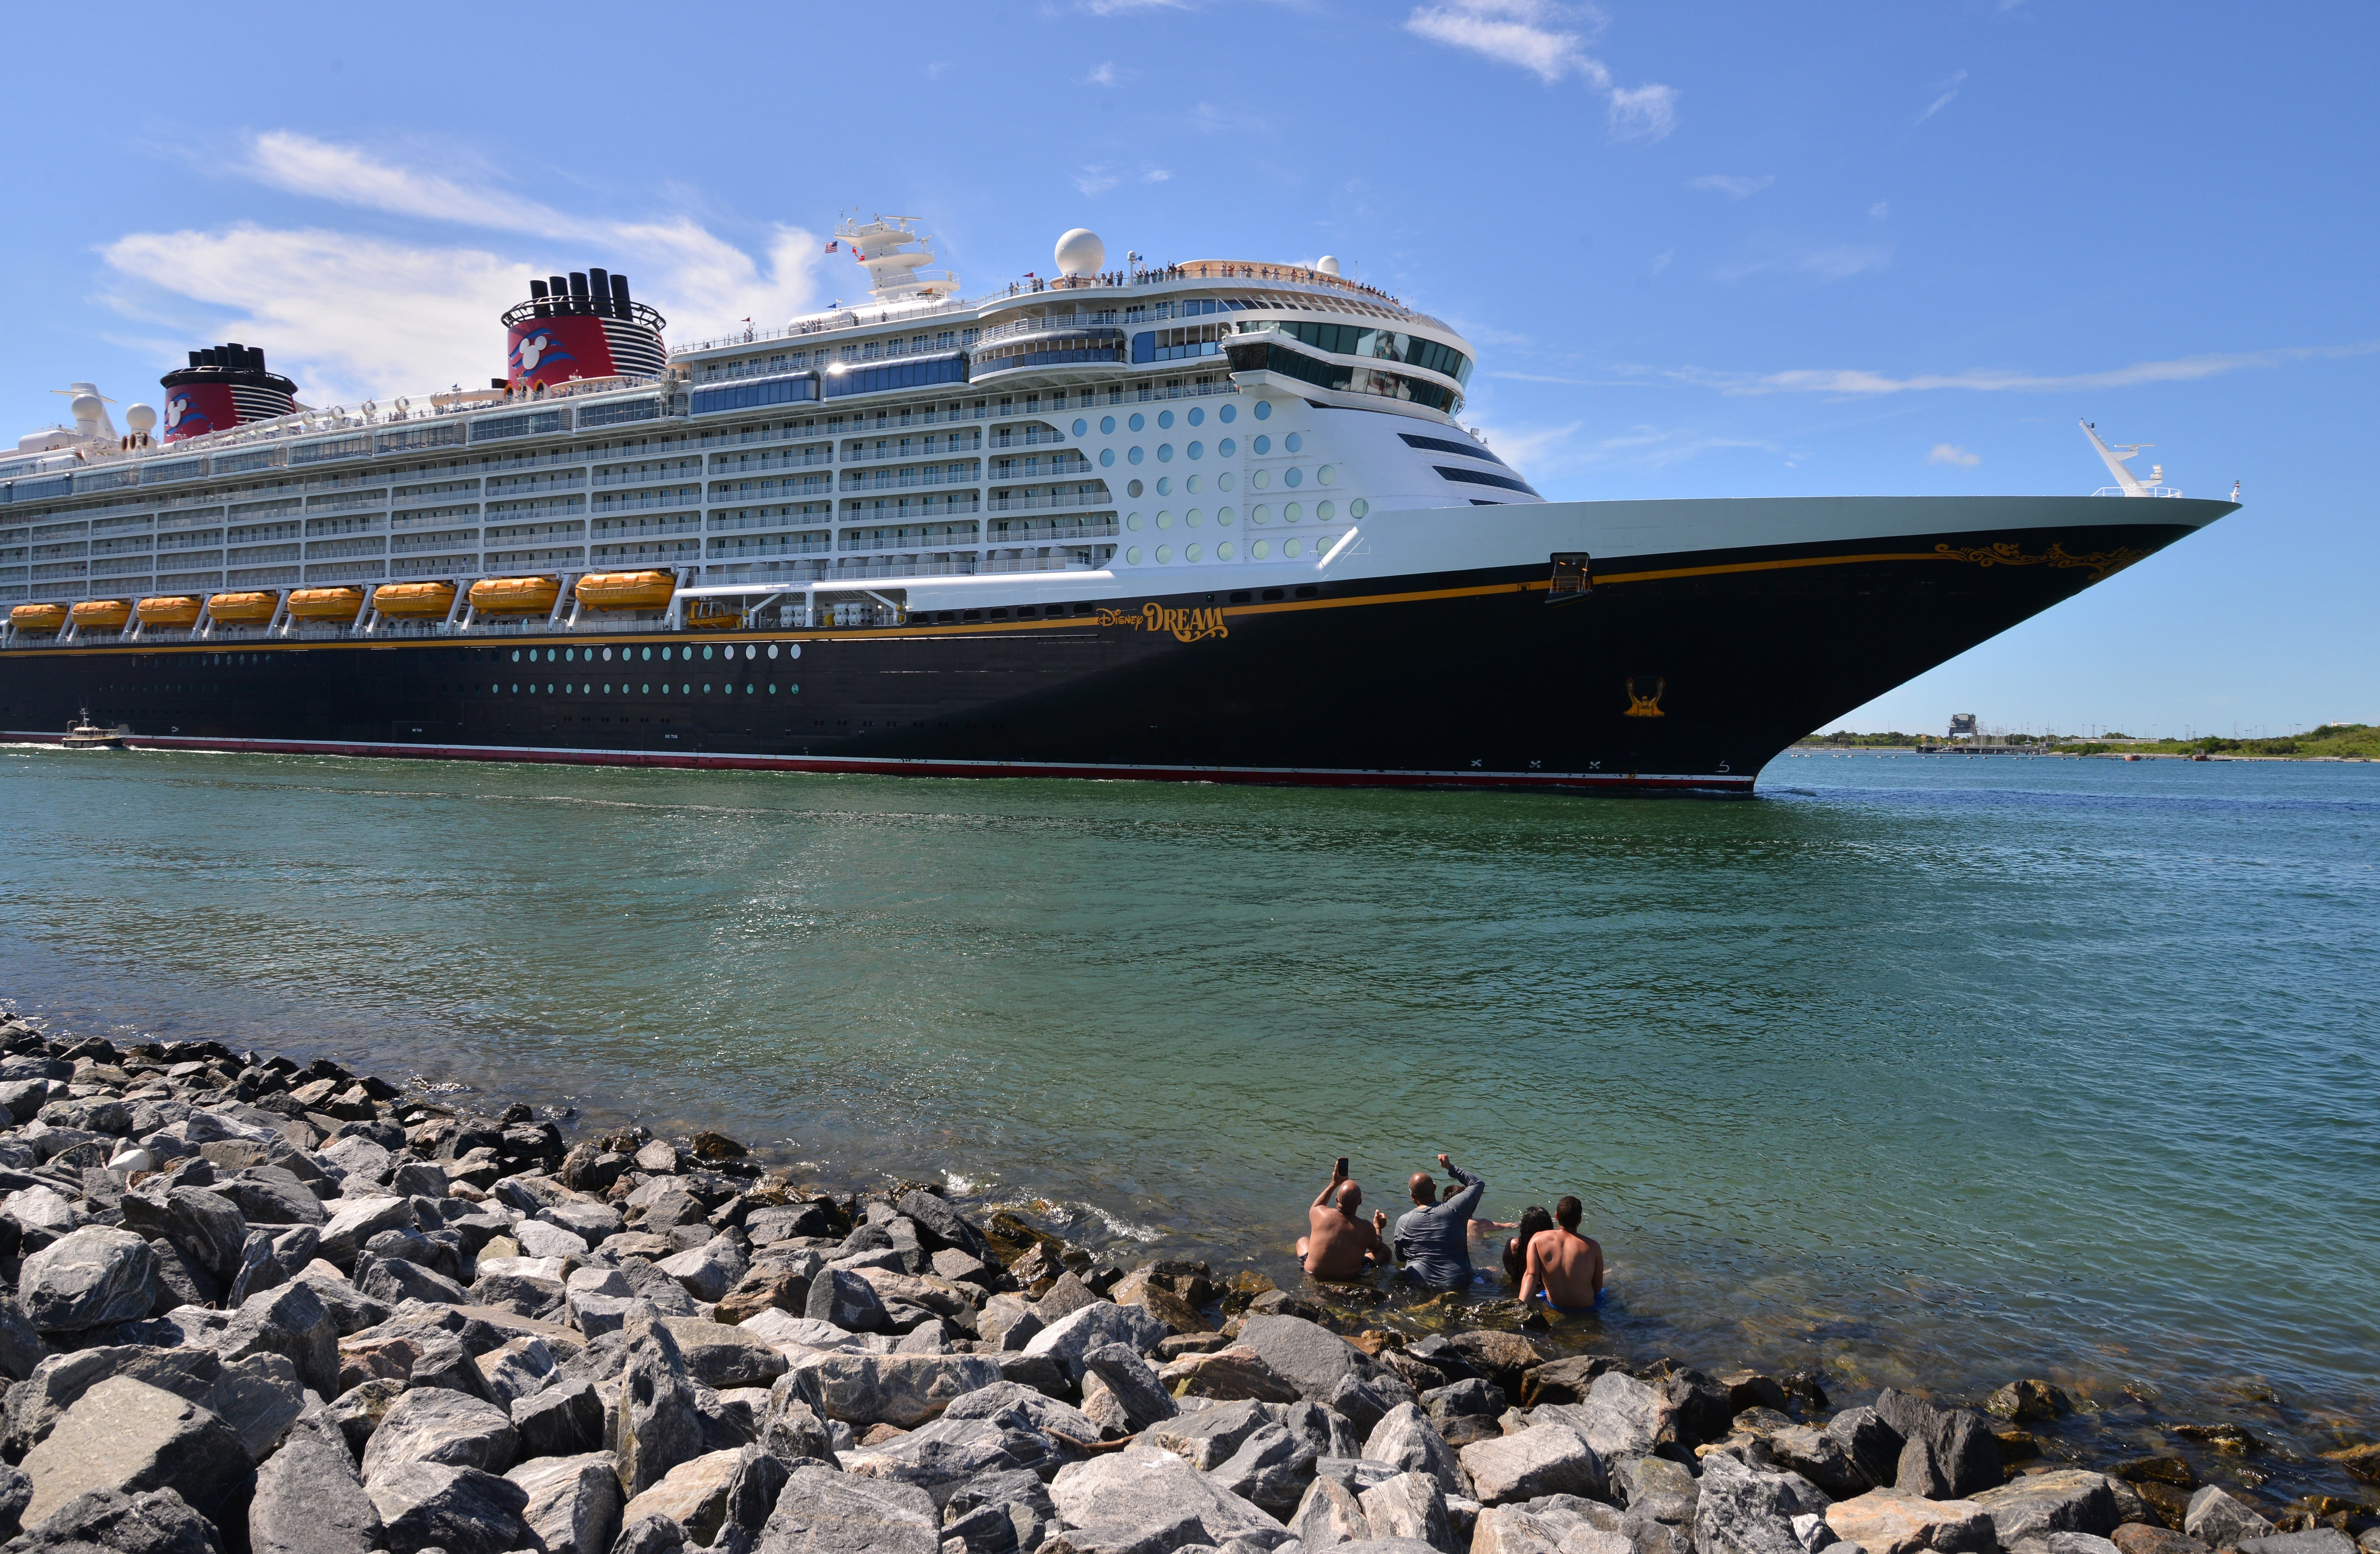 Disney Dream sails on test cruise from Port Canaveral, Florida